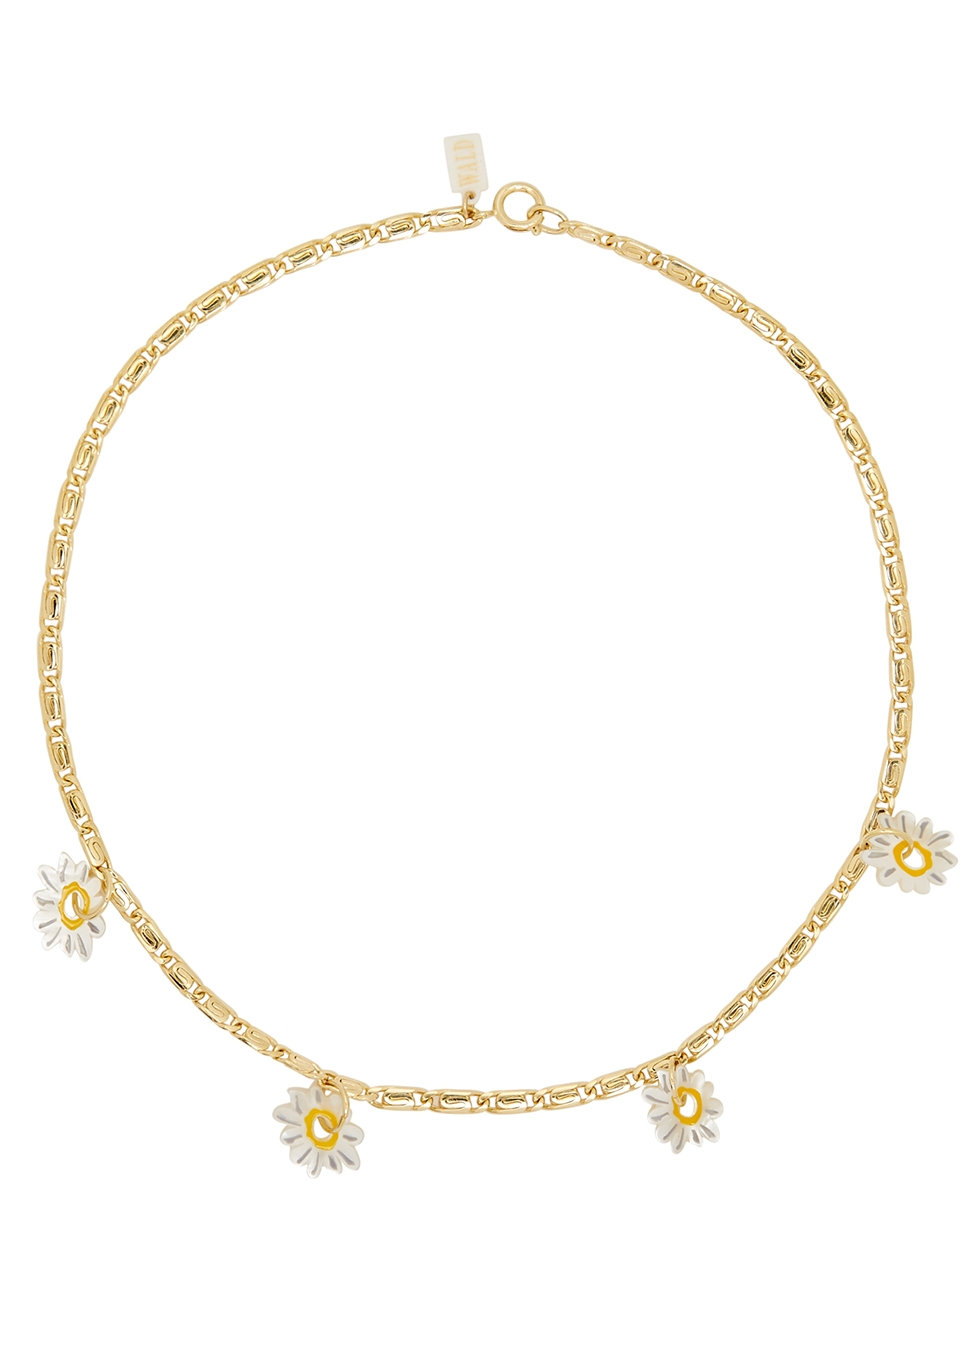 Daisy How High gold-plated necklace